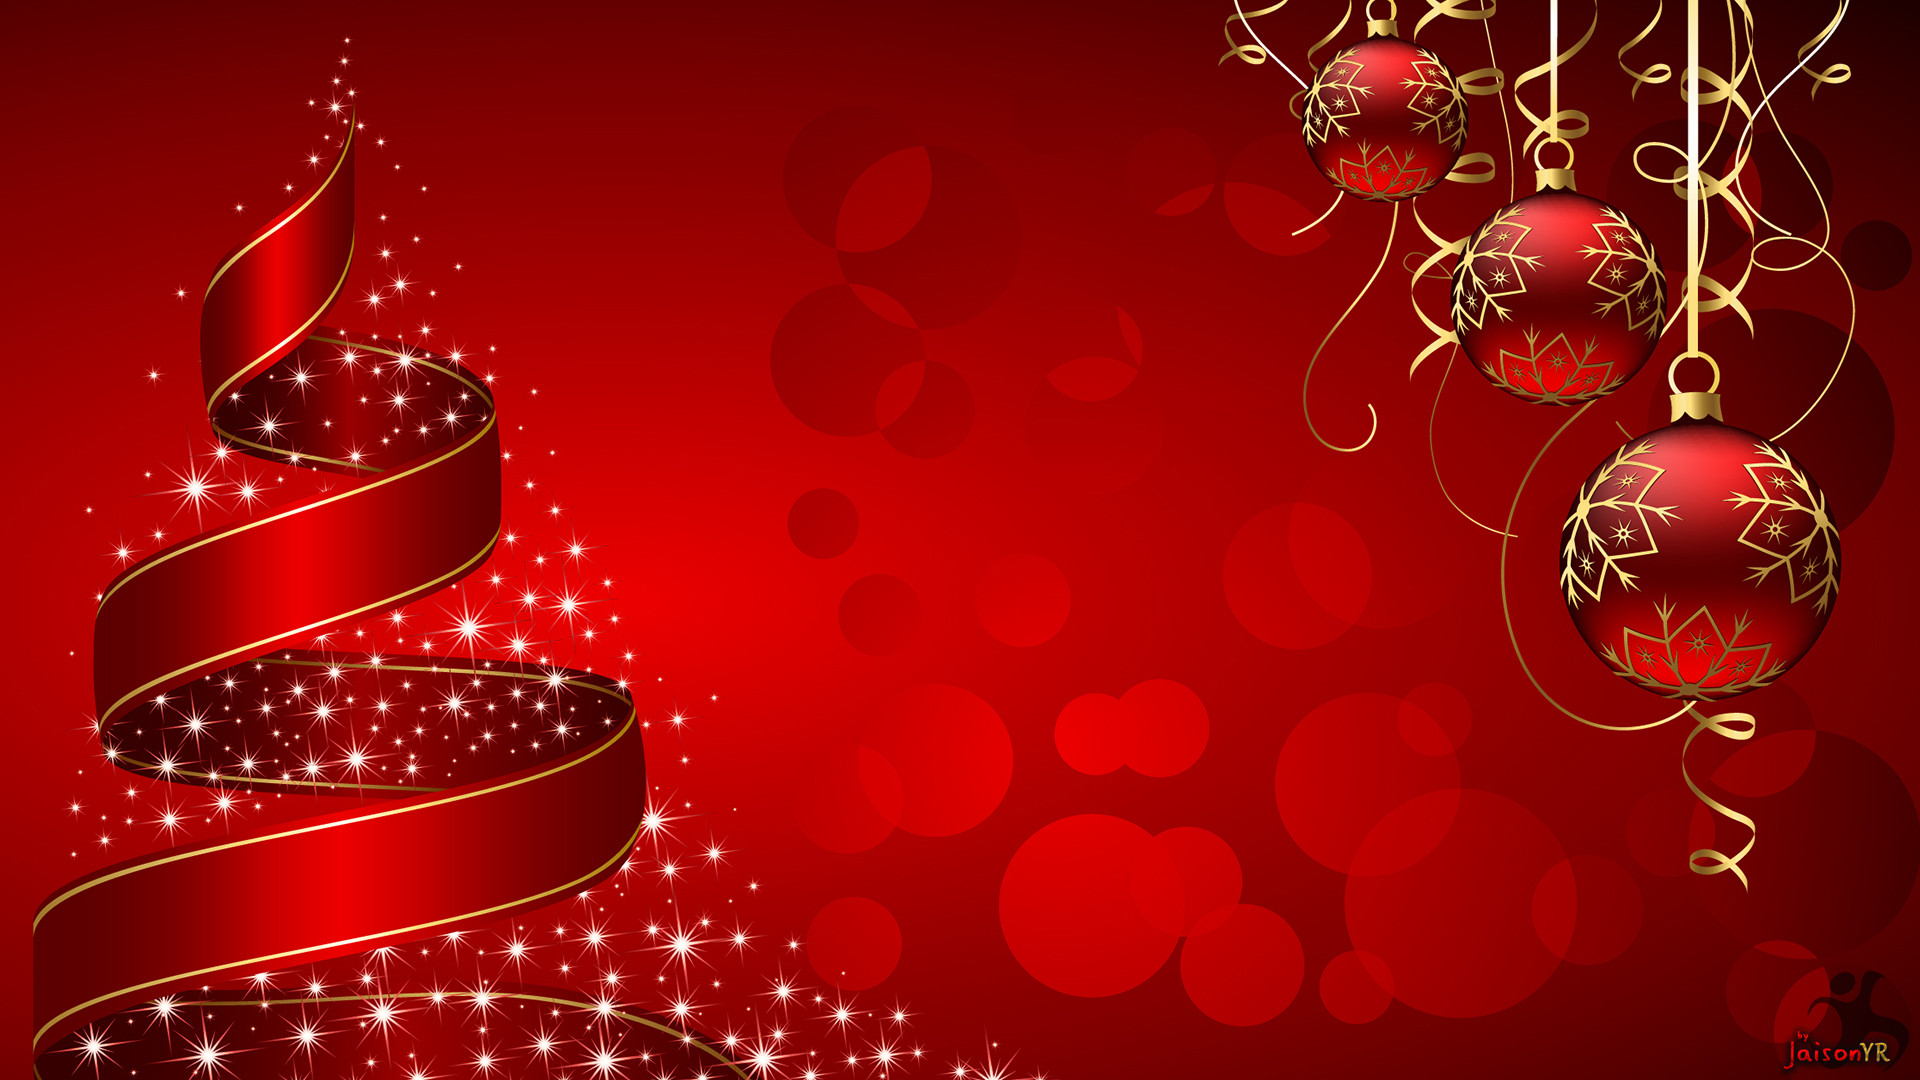 christmas pictures wallpaper (75+ images)